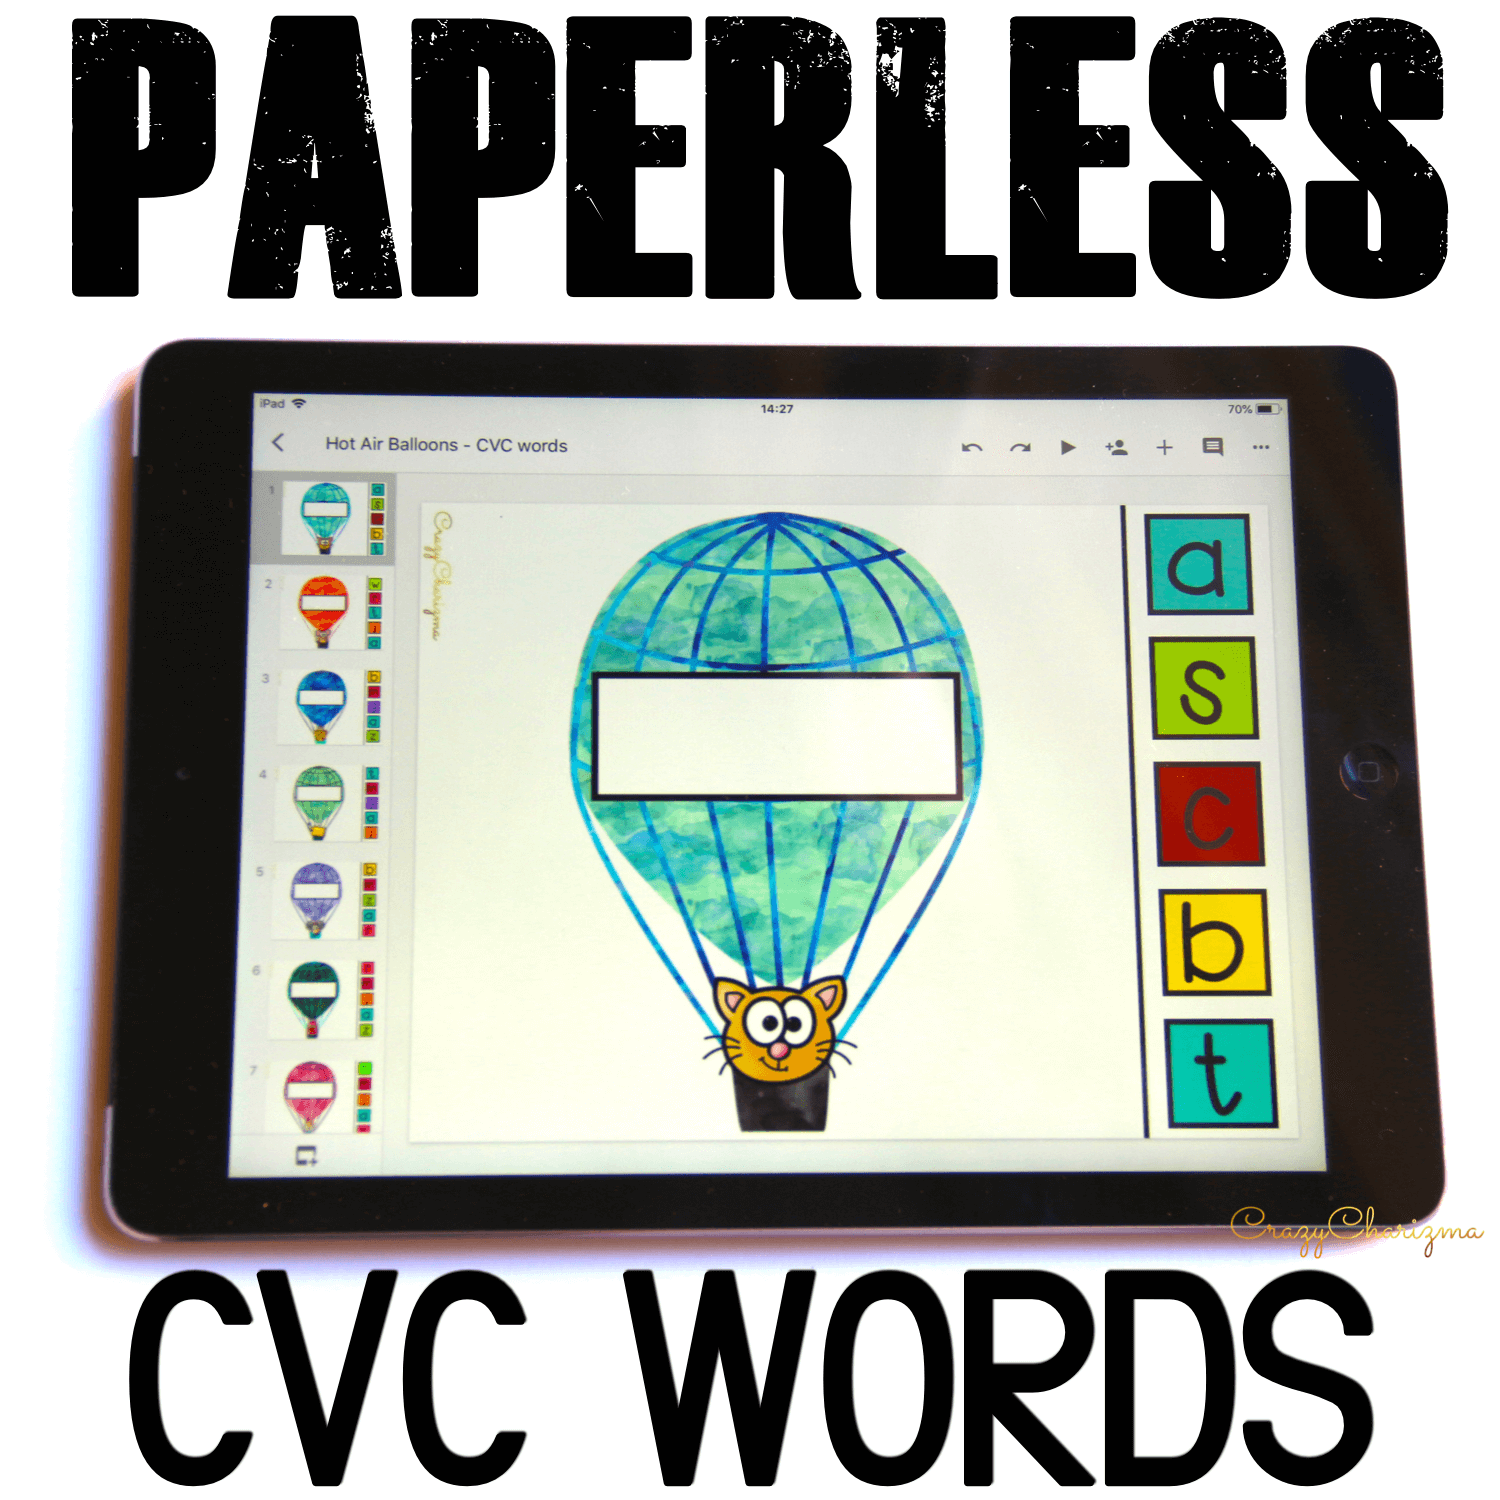 Google Classroom Activities for Kindergarten, CVC words. Need easy to use CVC word work? Grab paperless activities for Google Classroom™. Kids will love reading phonics with these hot air balloons! #CrazyCharizma #GoogleClassroom #GoogleClassroomKindergarten #HandsOnActivitiesForKids #PaperlessClassroomElementary #PhonicsActivities